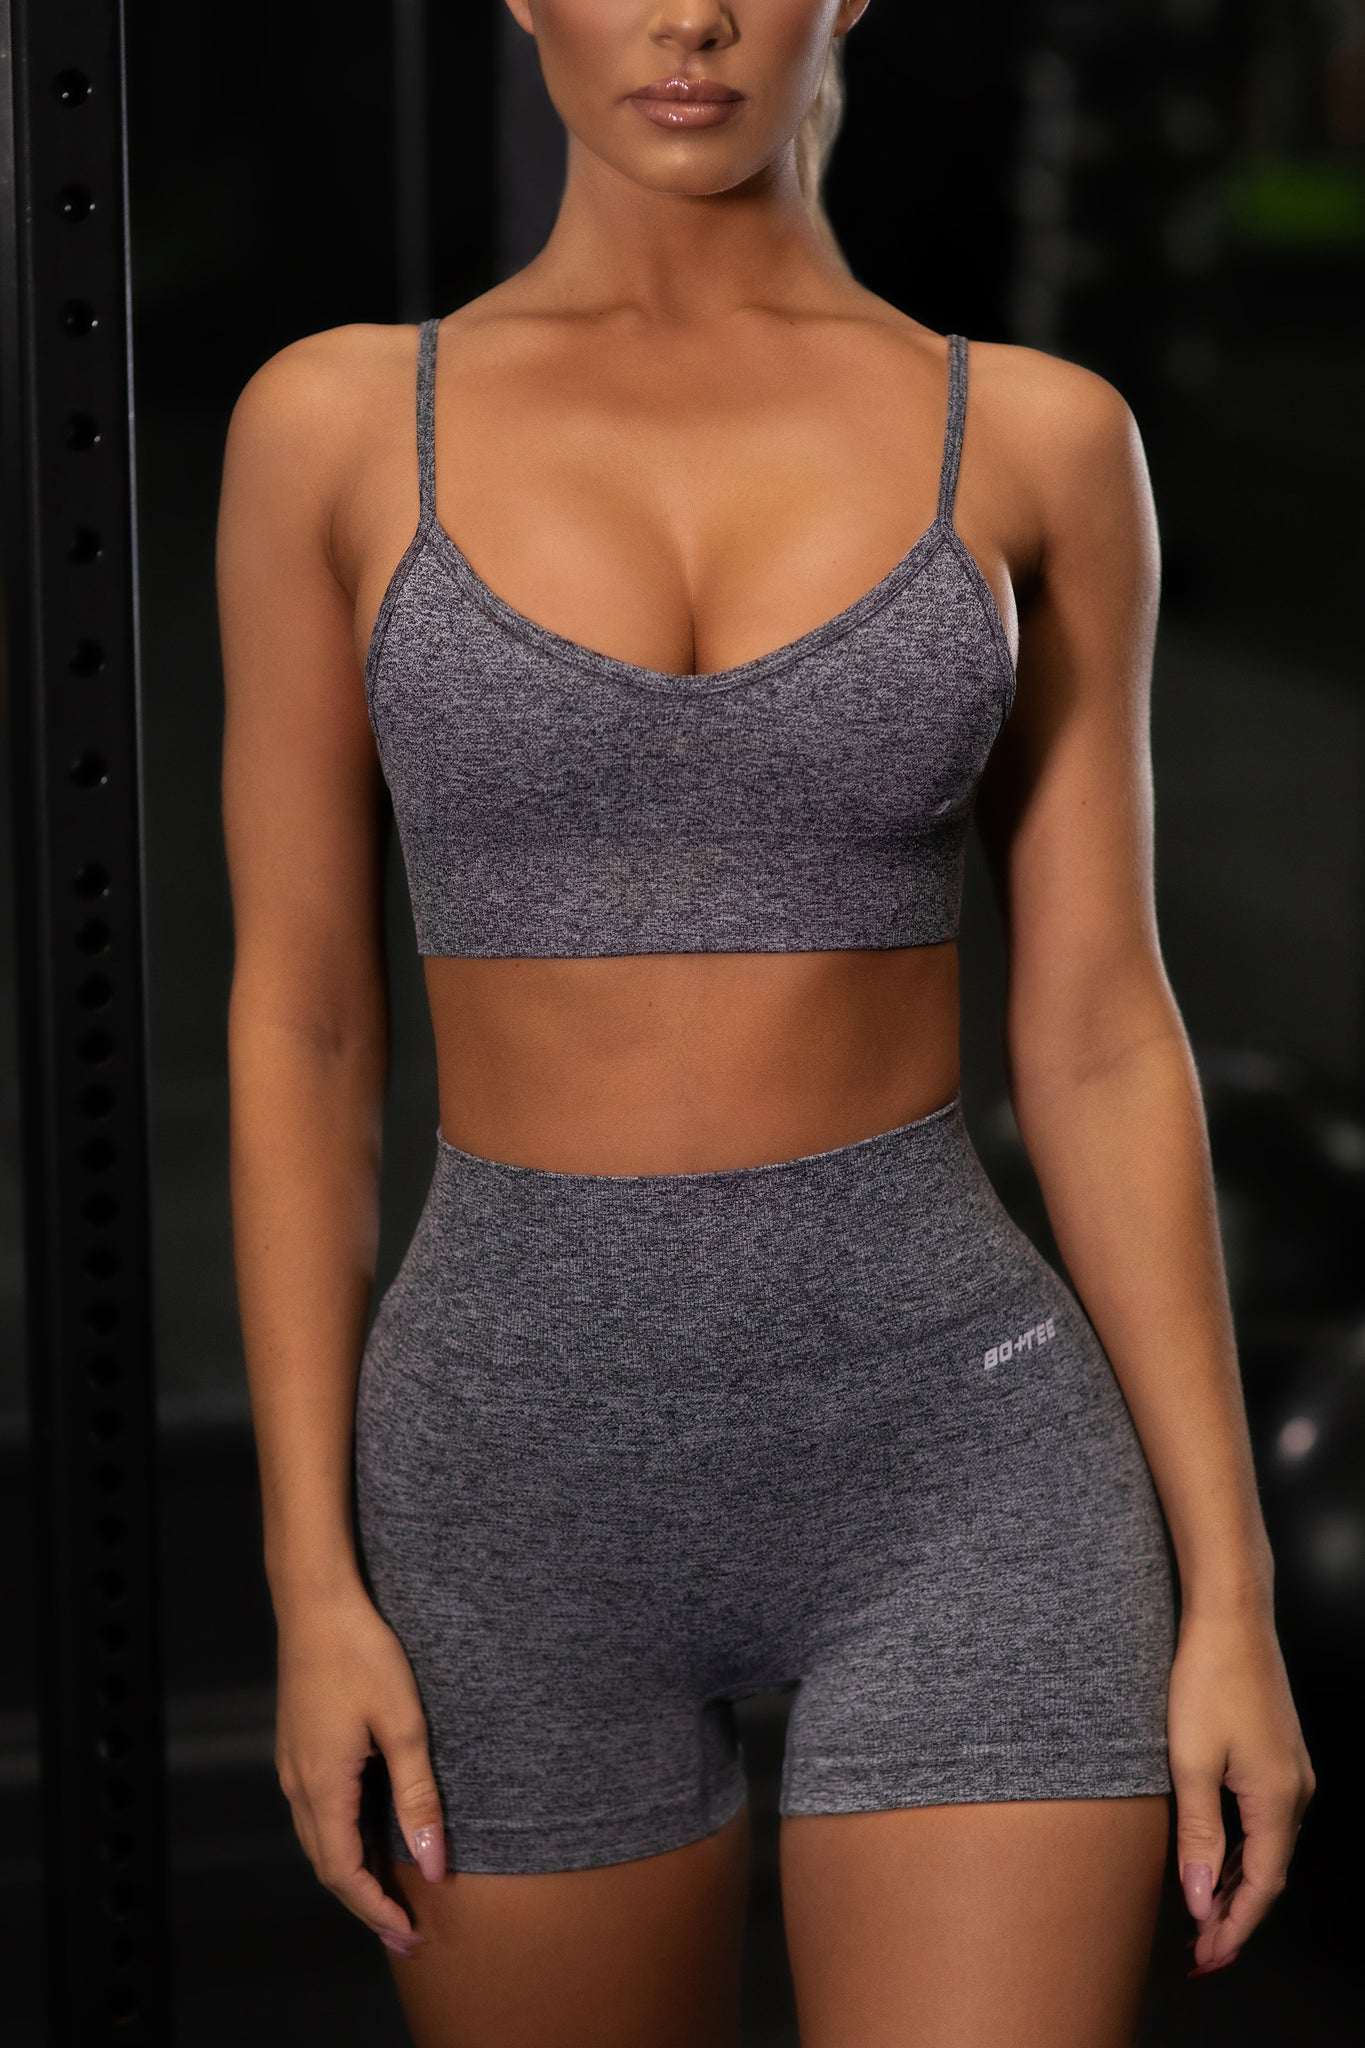 Plain black marl V neck sports bra with ribbed underband and thin adjustable straps. Image 1 of 6.